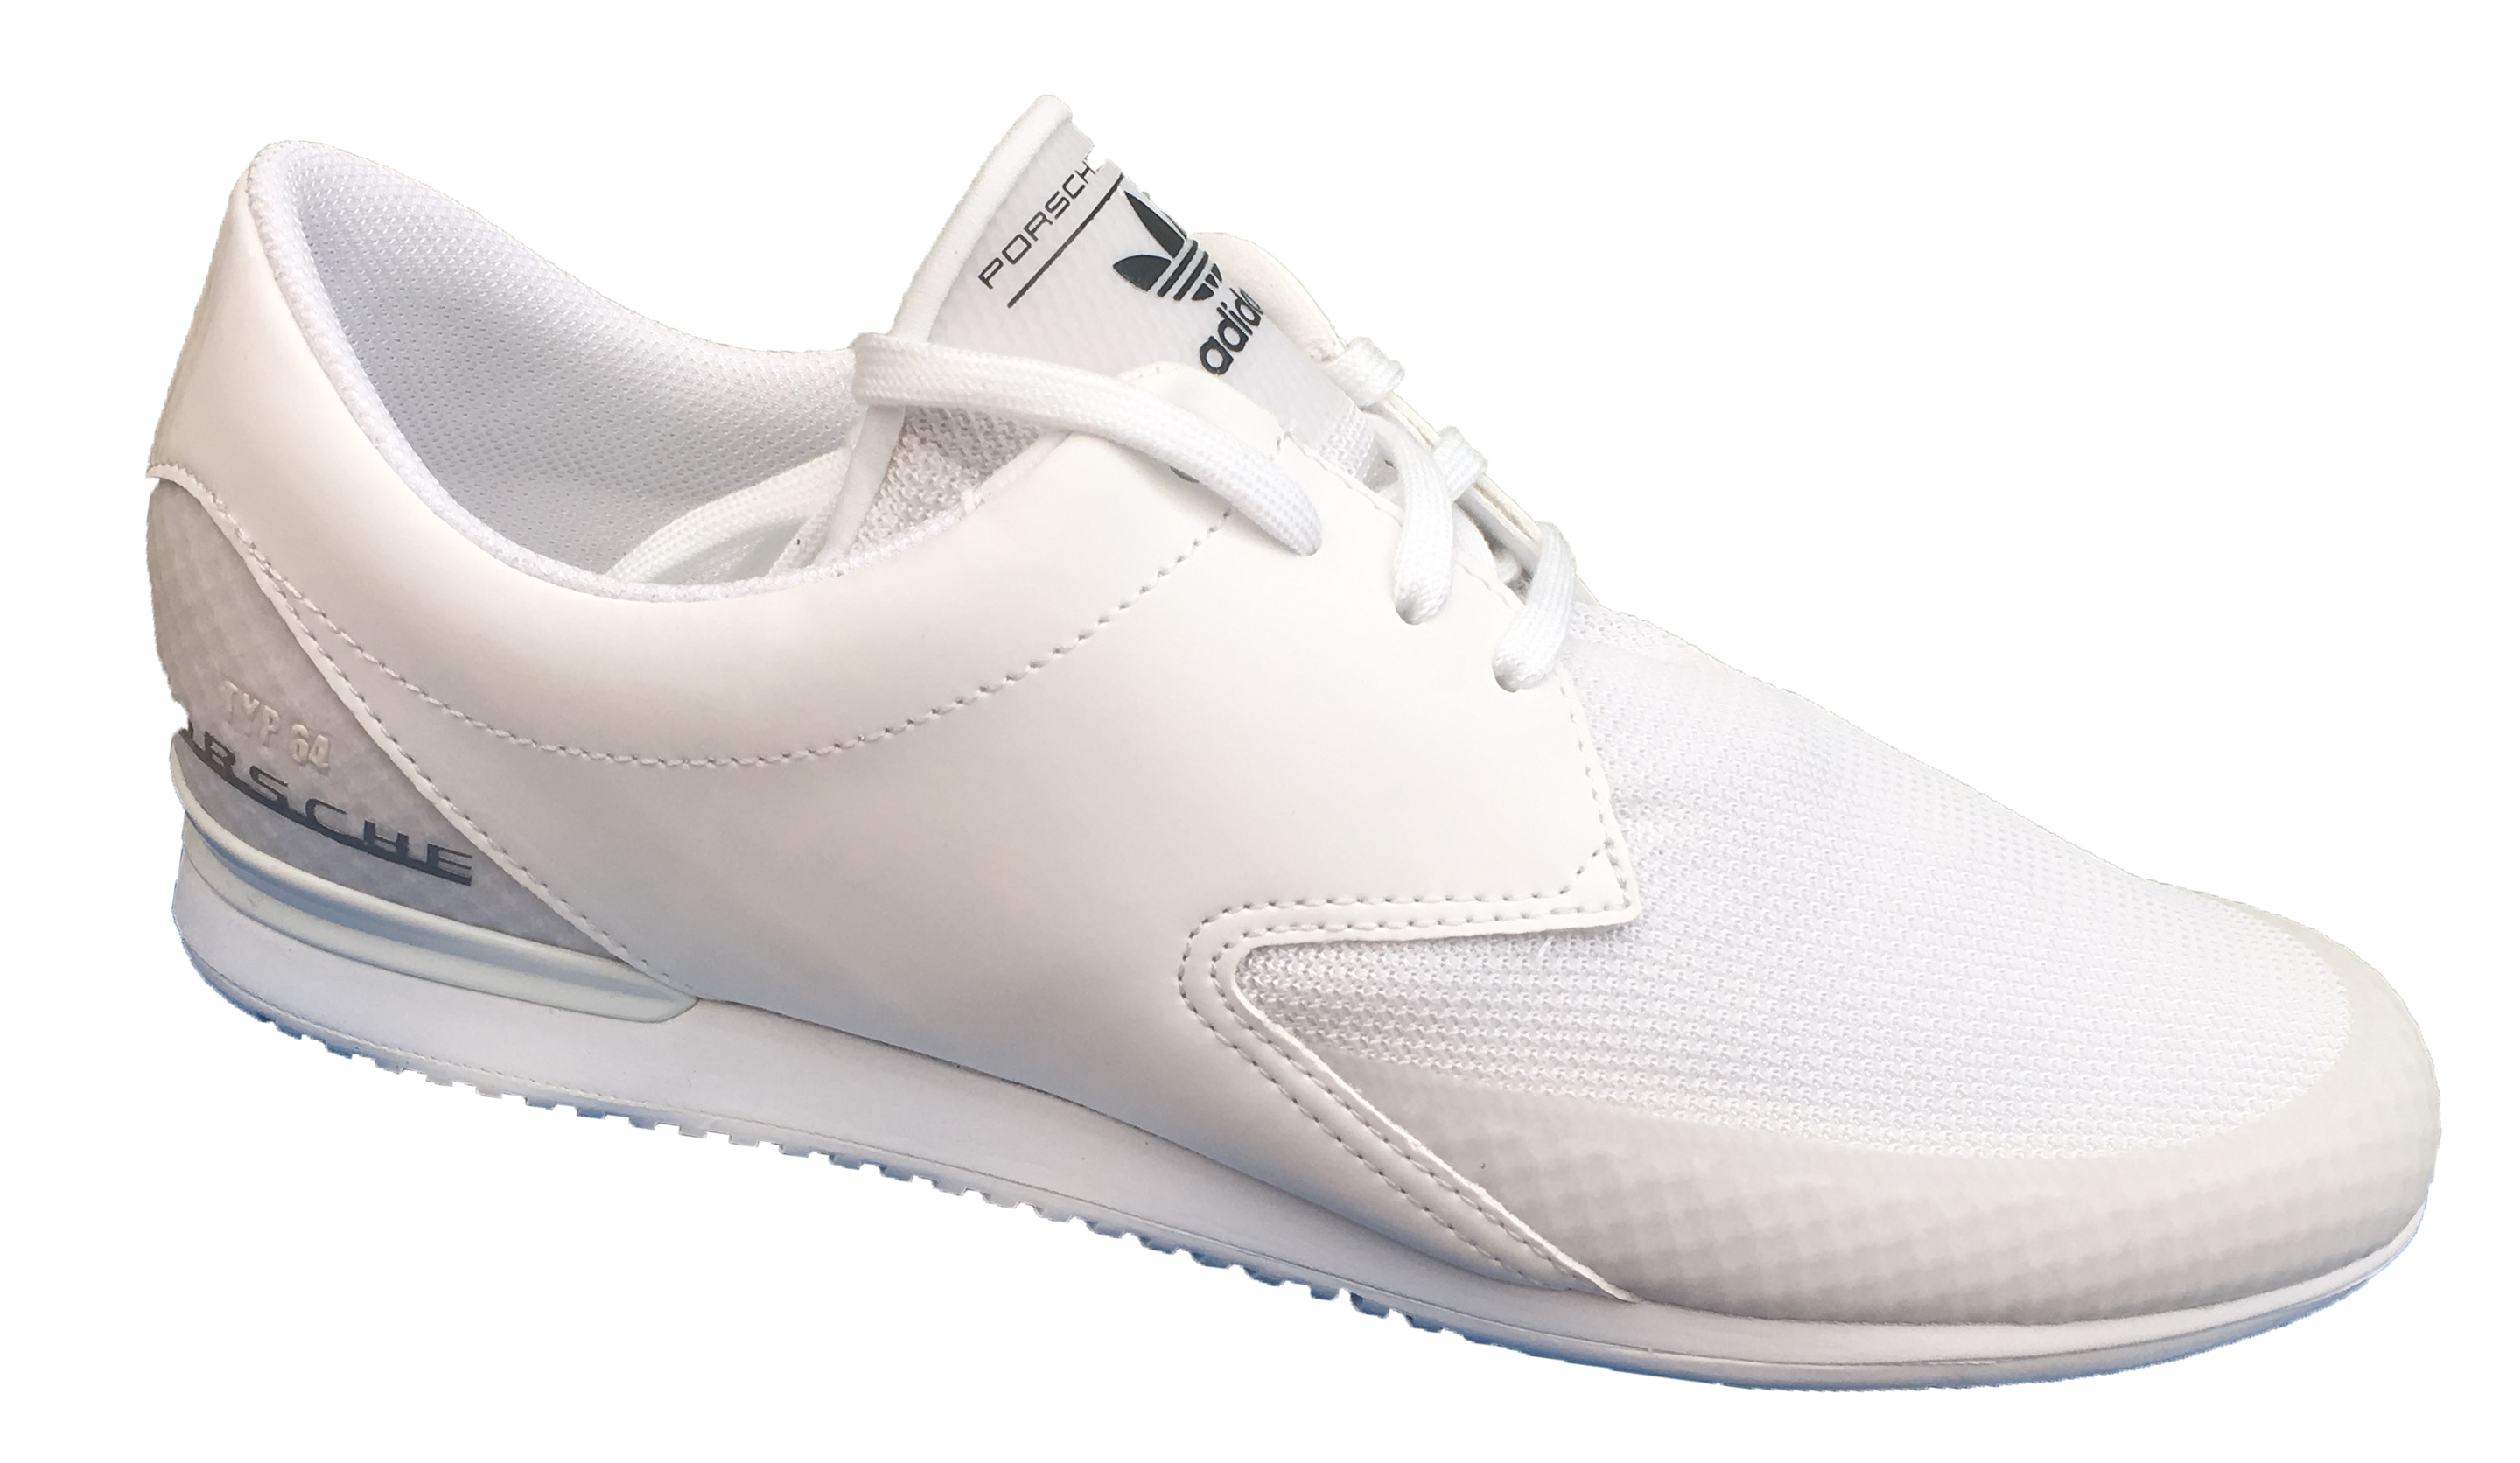 finest selection 4f8ea d43bc get adidas porsche typ 64 2.3 966e2 be0f4